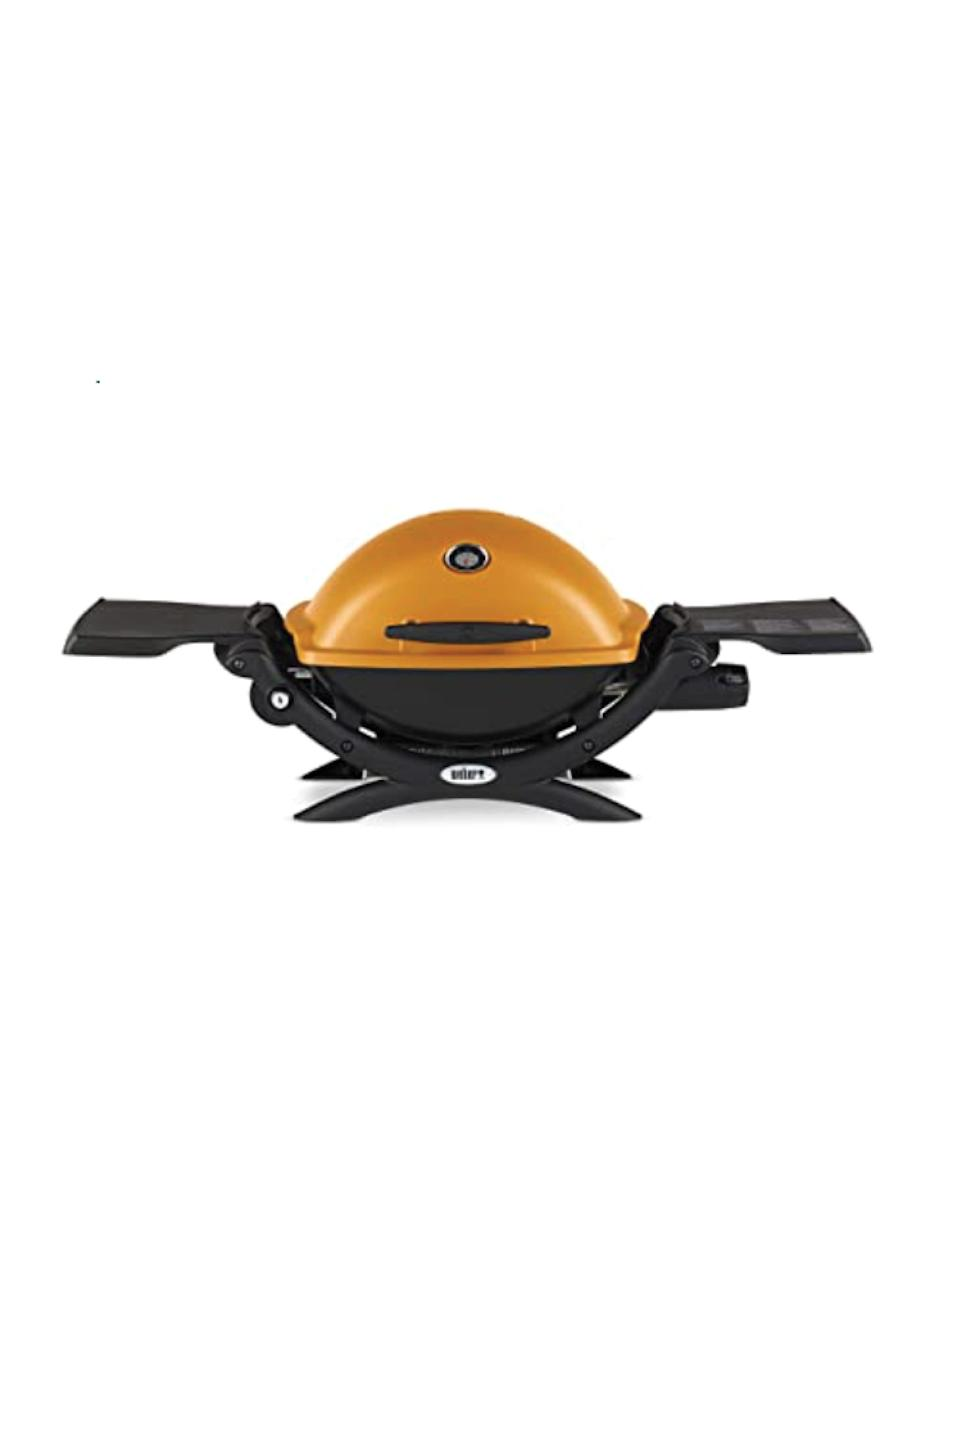 """<p><strong>Weber</strong></p><p>amazon.com</p><p><strong>$219.00</strong></p><p><a href=""""https://www.amazon.com/dp/B00RFXRZ9Y?tag=syn-yahoo-20&ascsubtag=%5Bartid%7C10072.g.36728116%5Bsrc%7Cyahoo-us"""" rel=""""nofollow noopener"""" target=""""_blank"""" data-ylk=""""slk:Shop Now"""" class=""""link rapid-noclick-resp"""">Shop Now</a></p><p>Dinner for two? This fully assembled model has one burner, a cast-iron grilling grate for easy cleanup, not to mention nearly 5,000 five-star reviews on Amazon.</p>"""